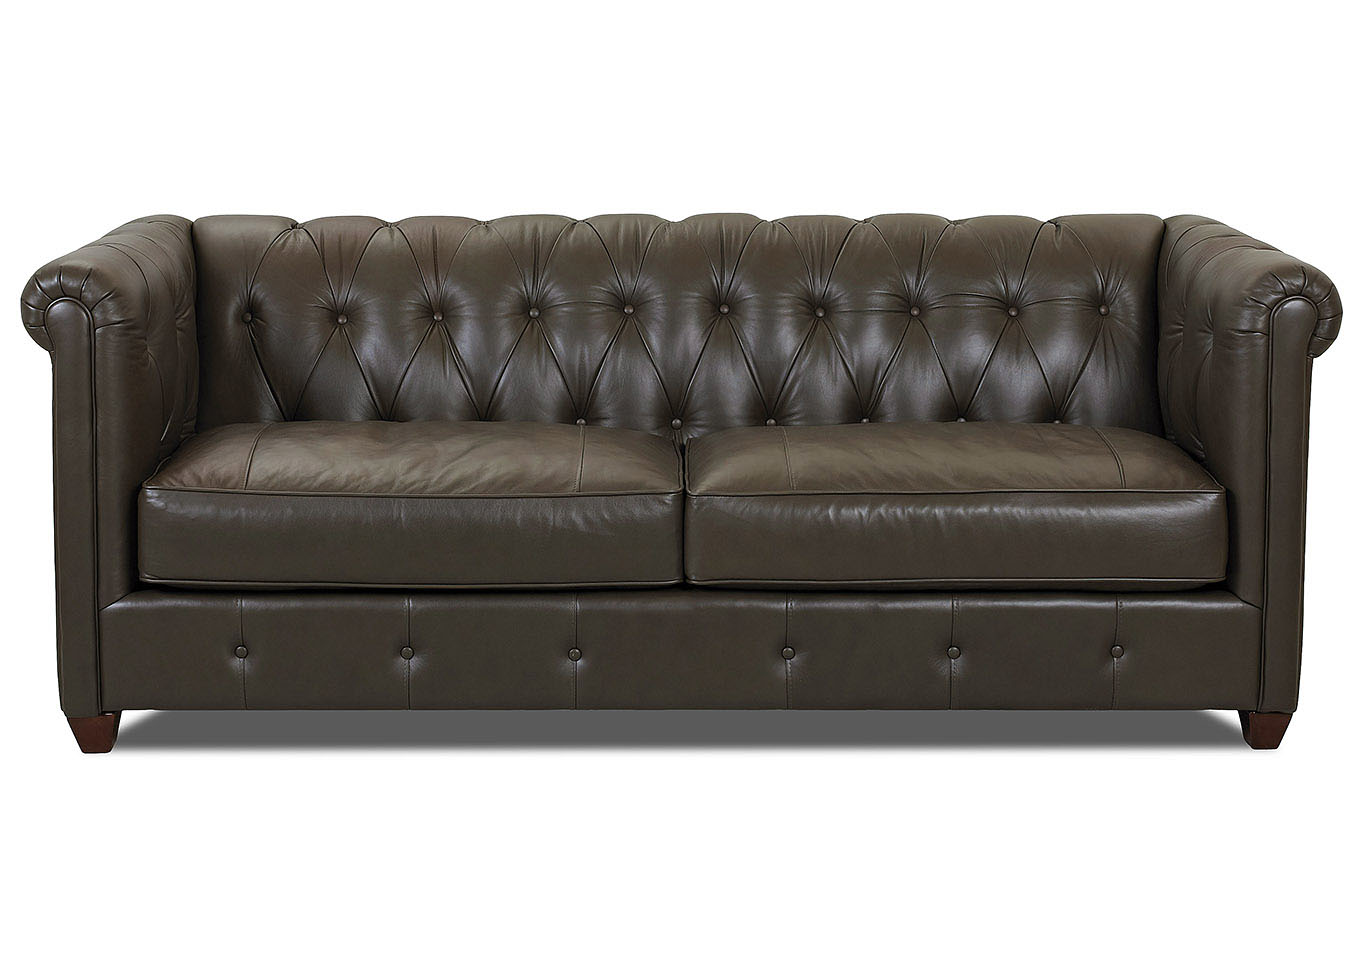 Beech Mountain Leather Stationary Sofa,Klaussner Home Furnishings